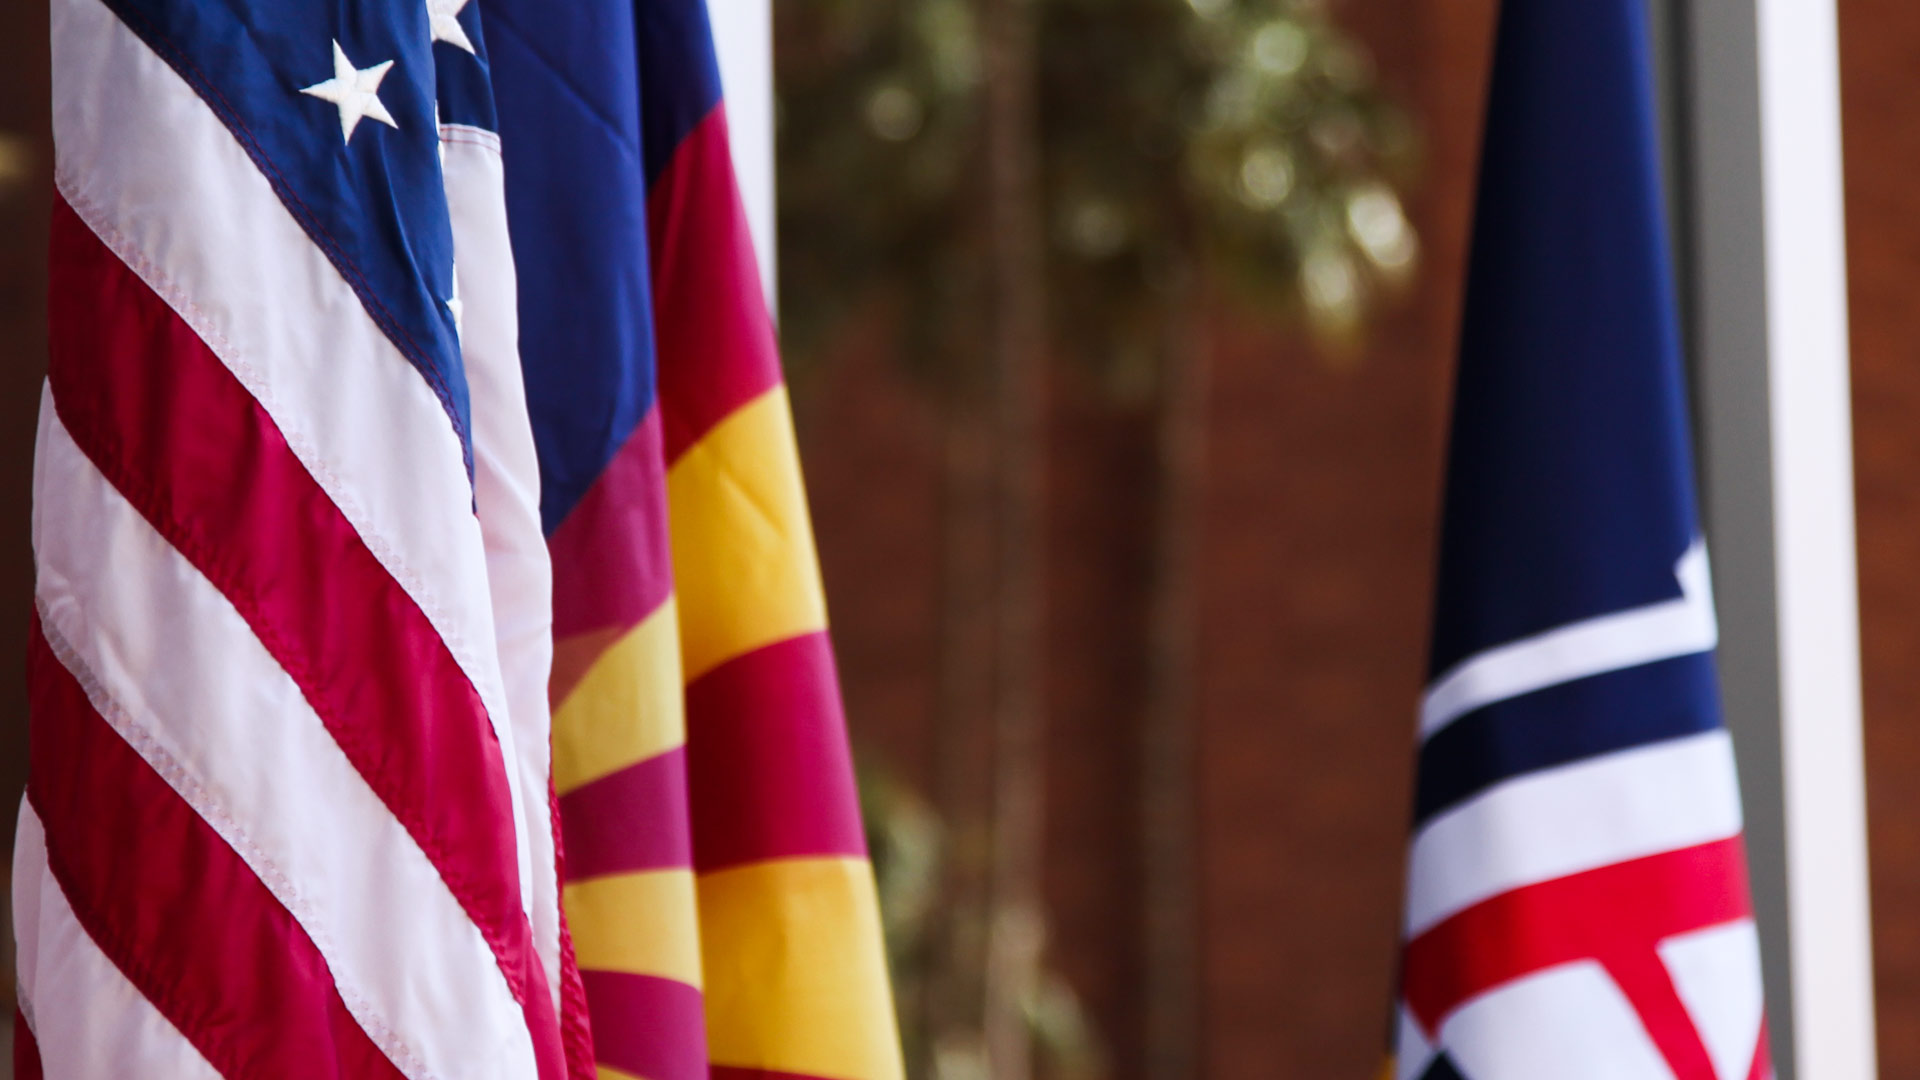 The United States, Arizona and University of Arizona flags.